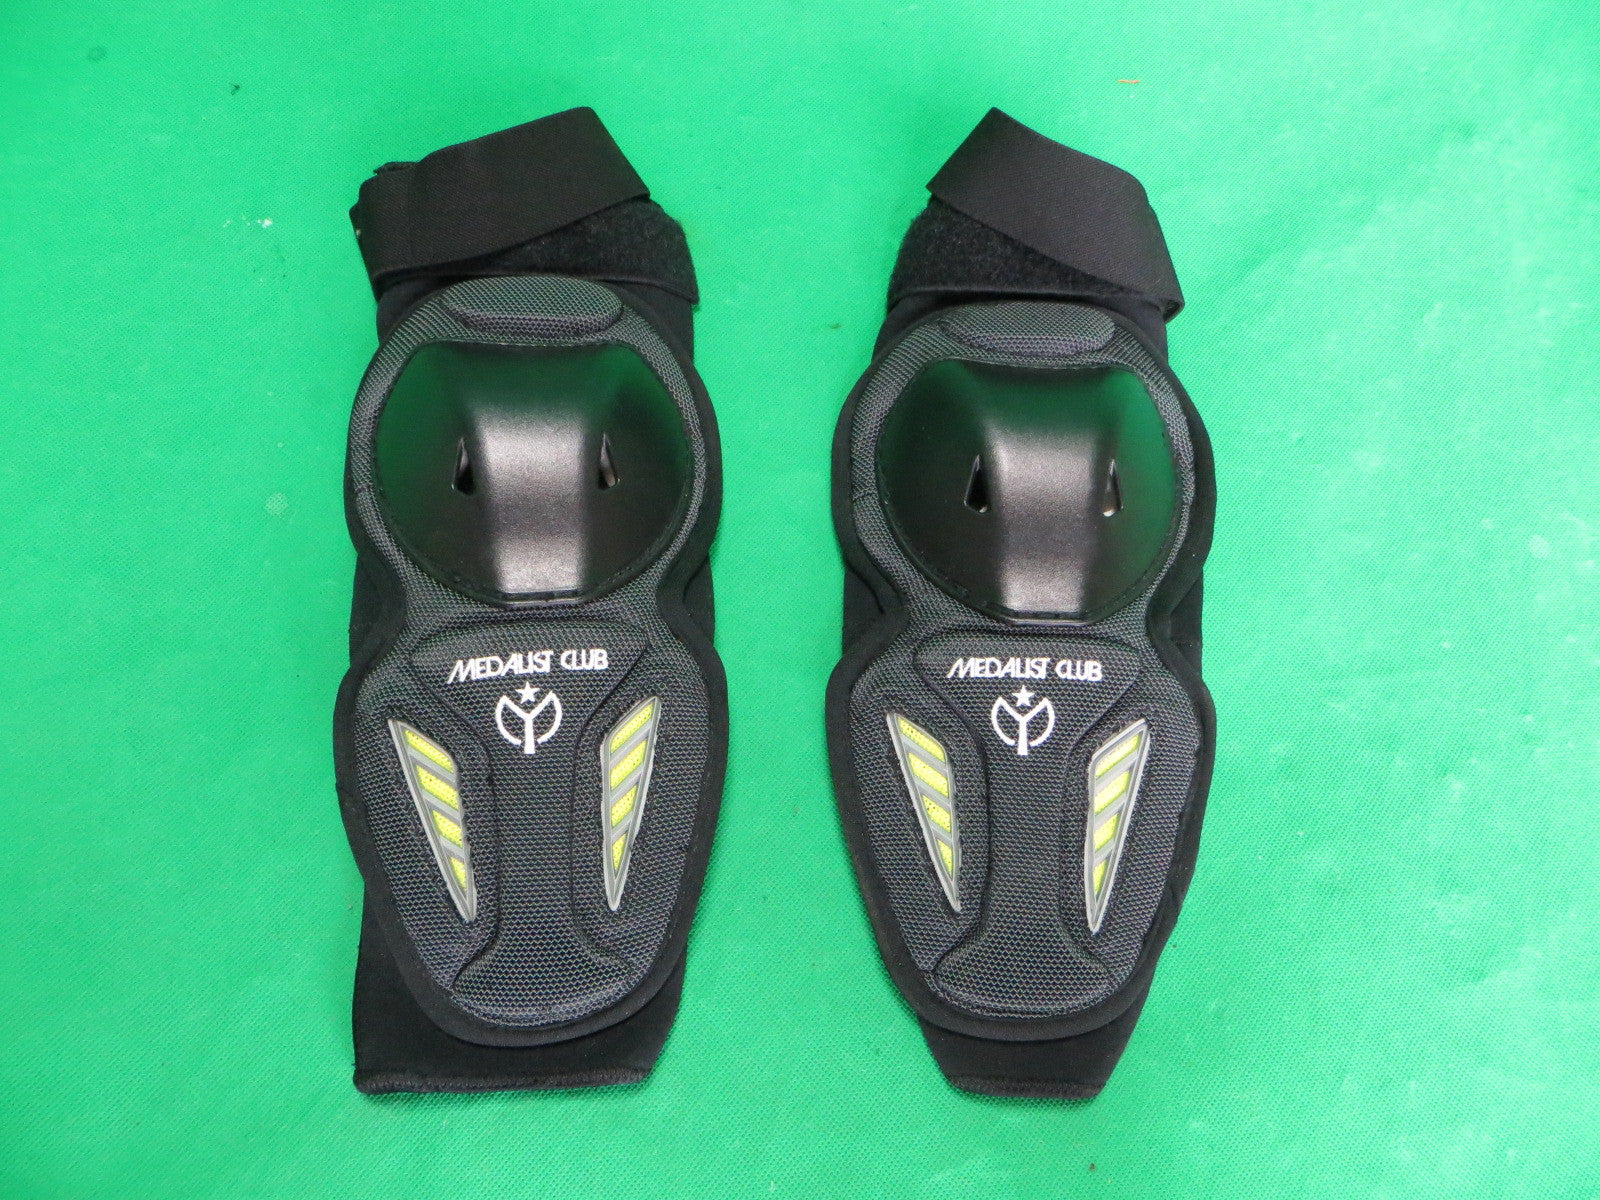 Never Used Medalist Club Keirin Elbow Pads XL (American L)